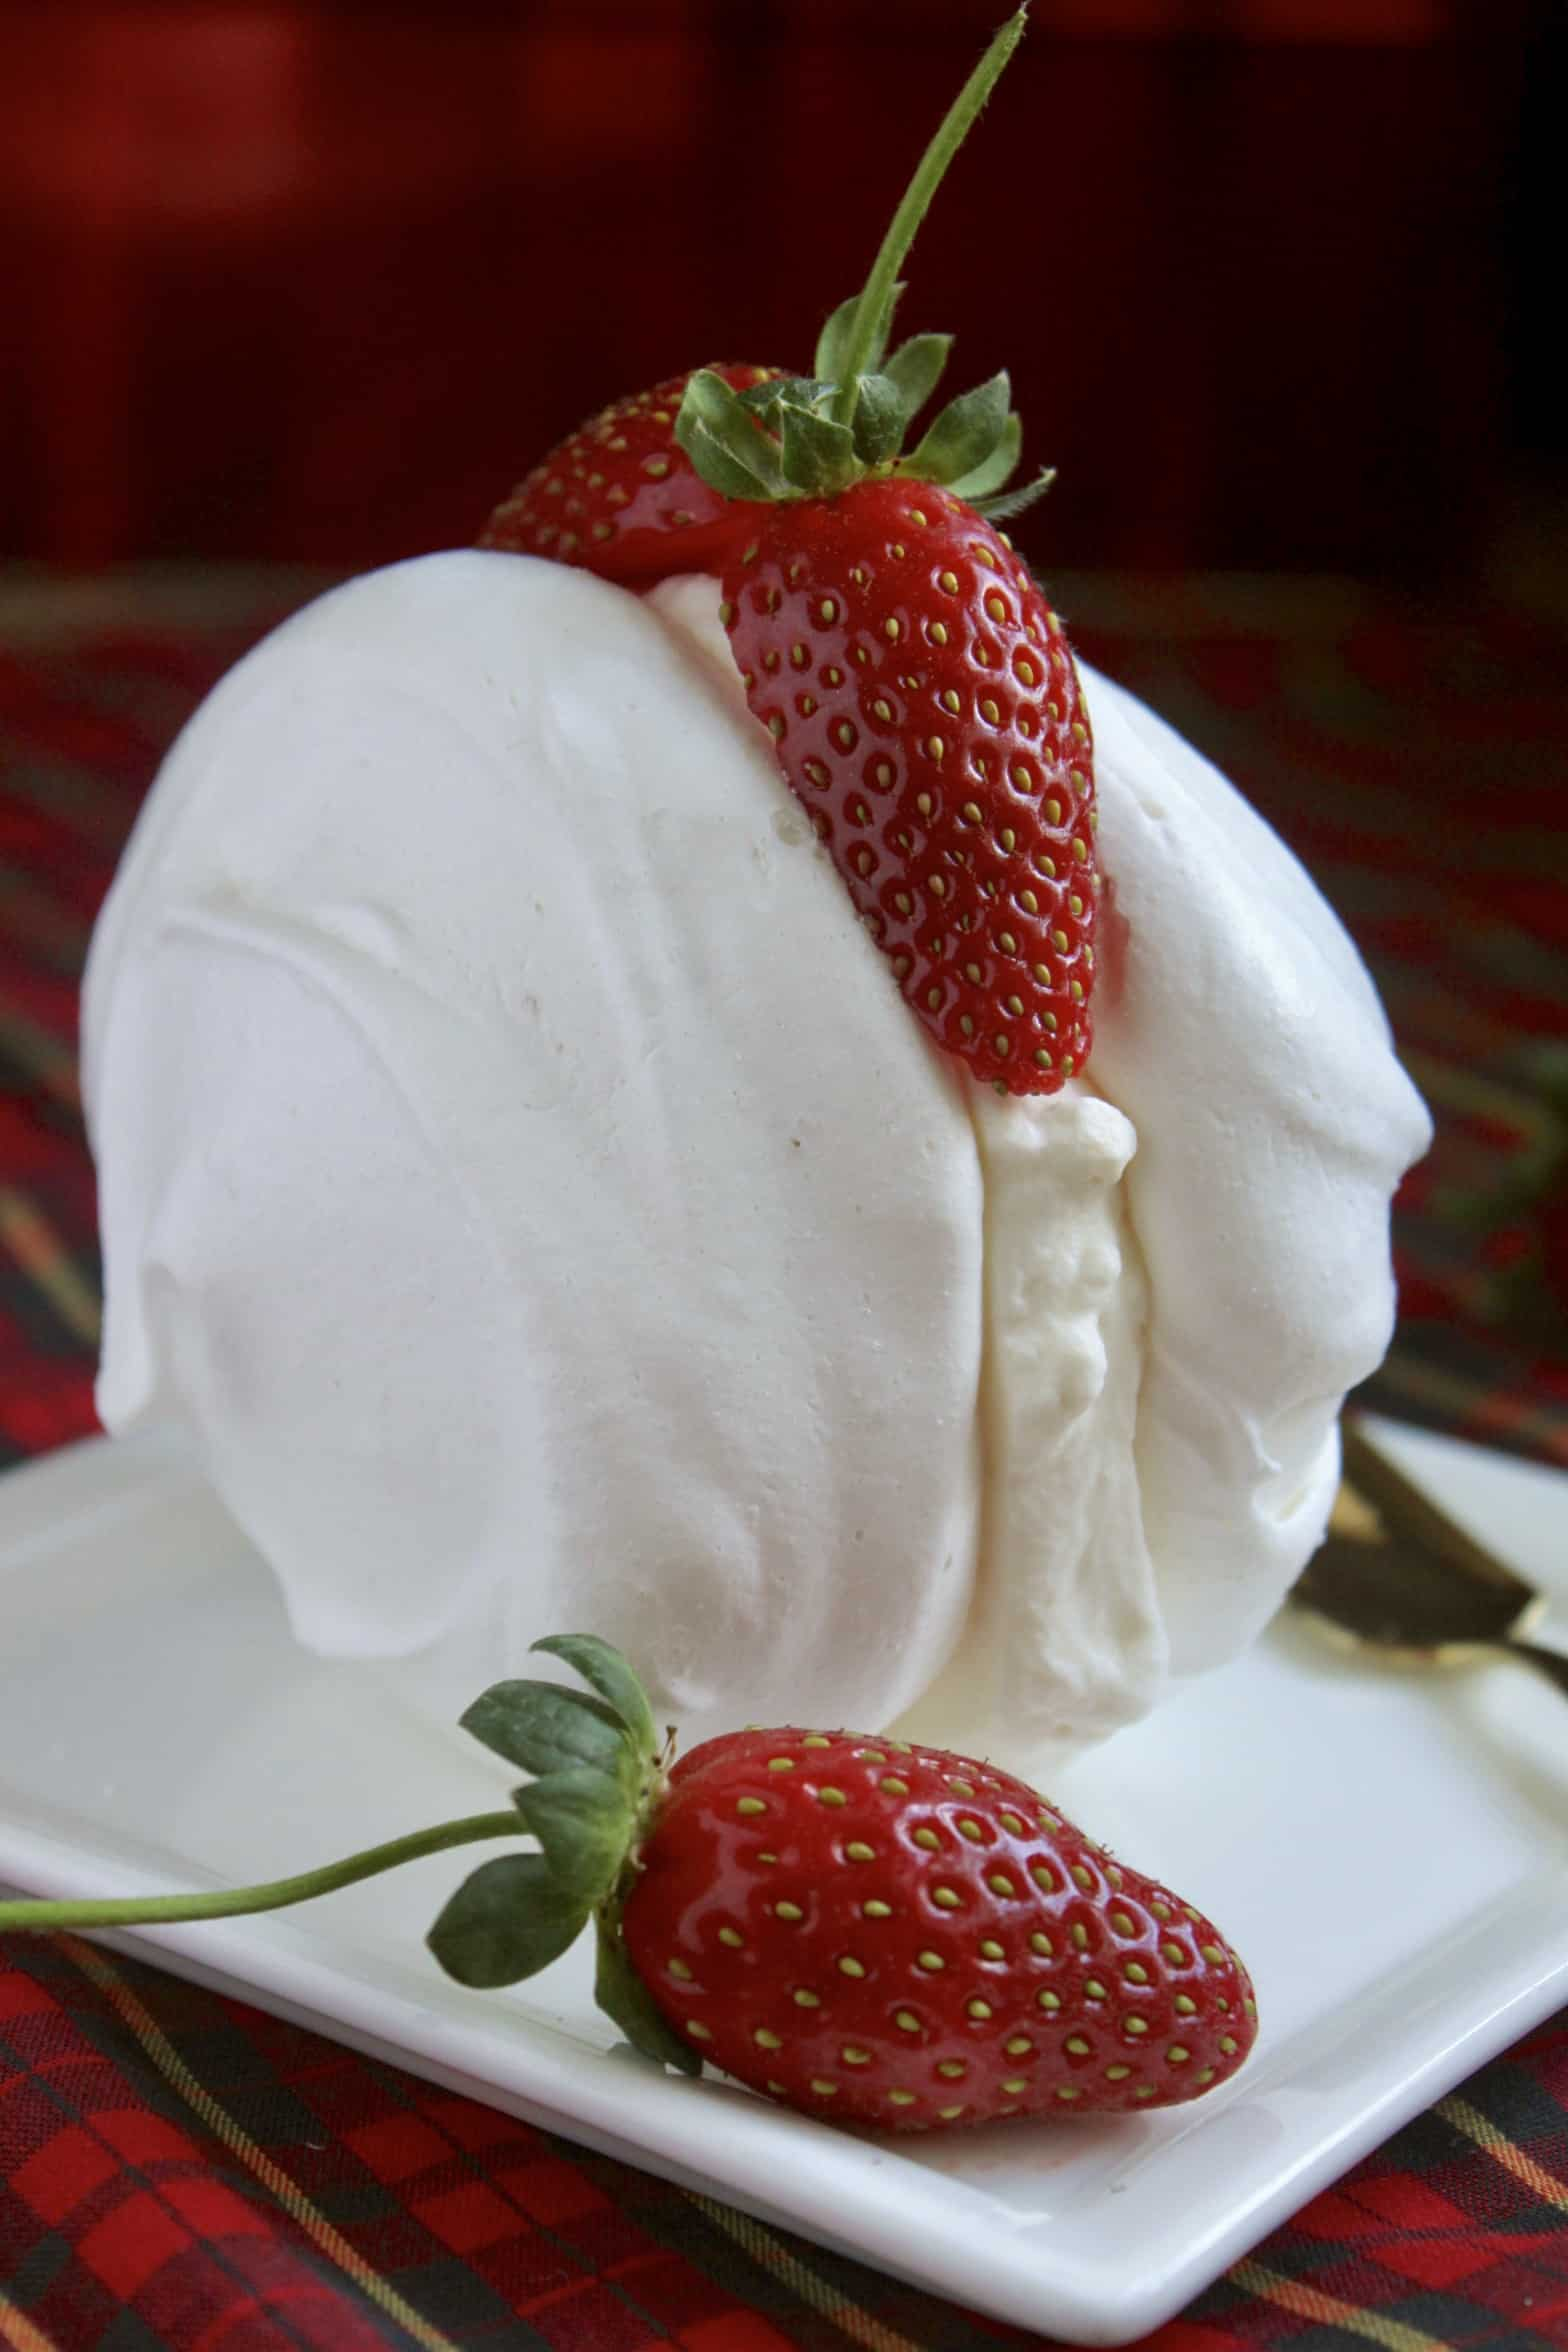 Meringues with cream and strawberries on a plate